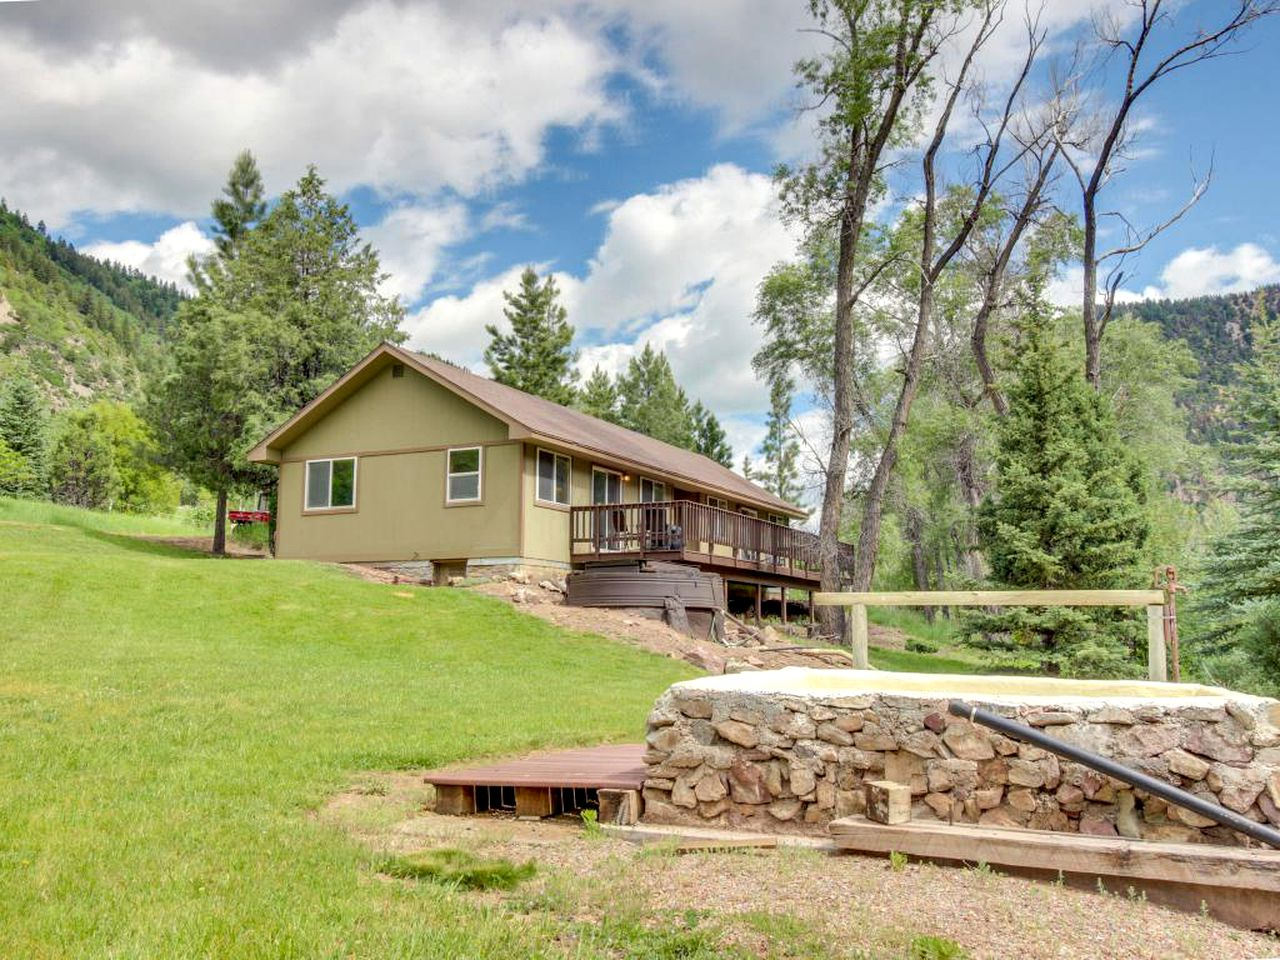 Cabins (Redstone, Colorado, United States)